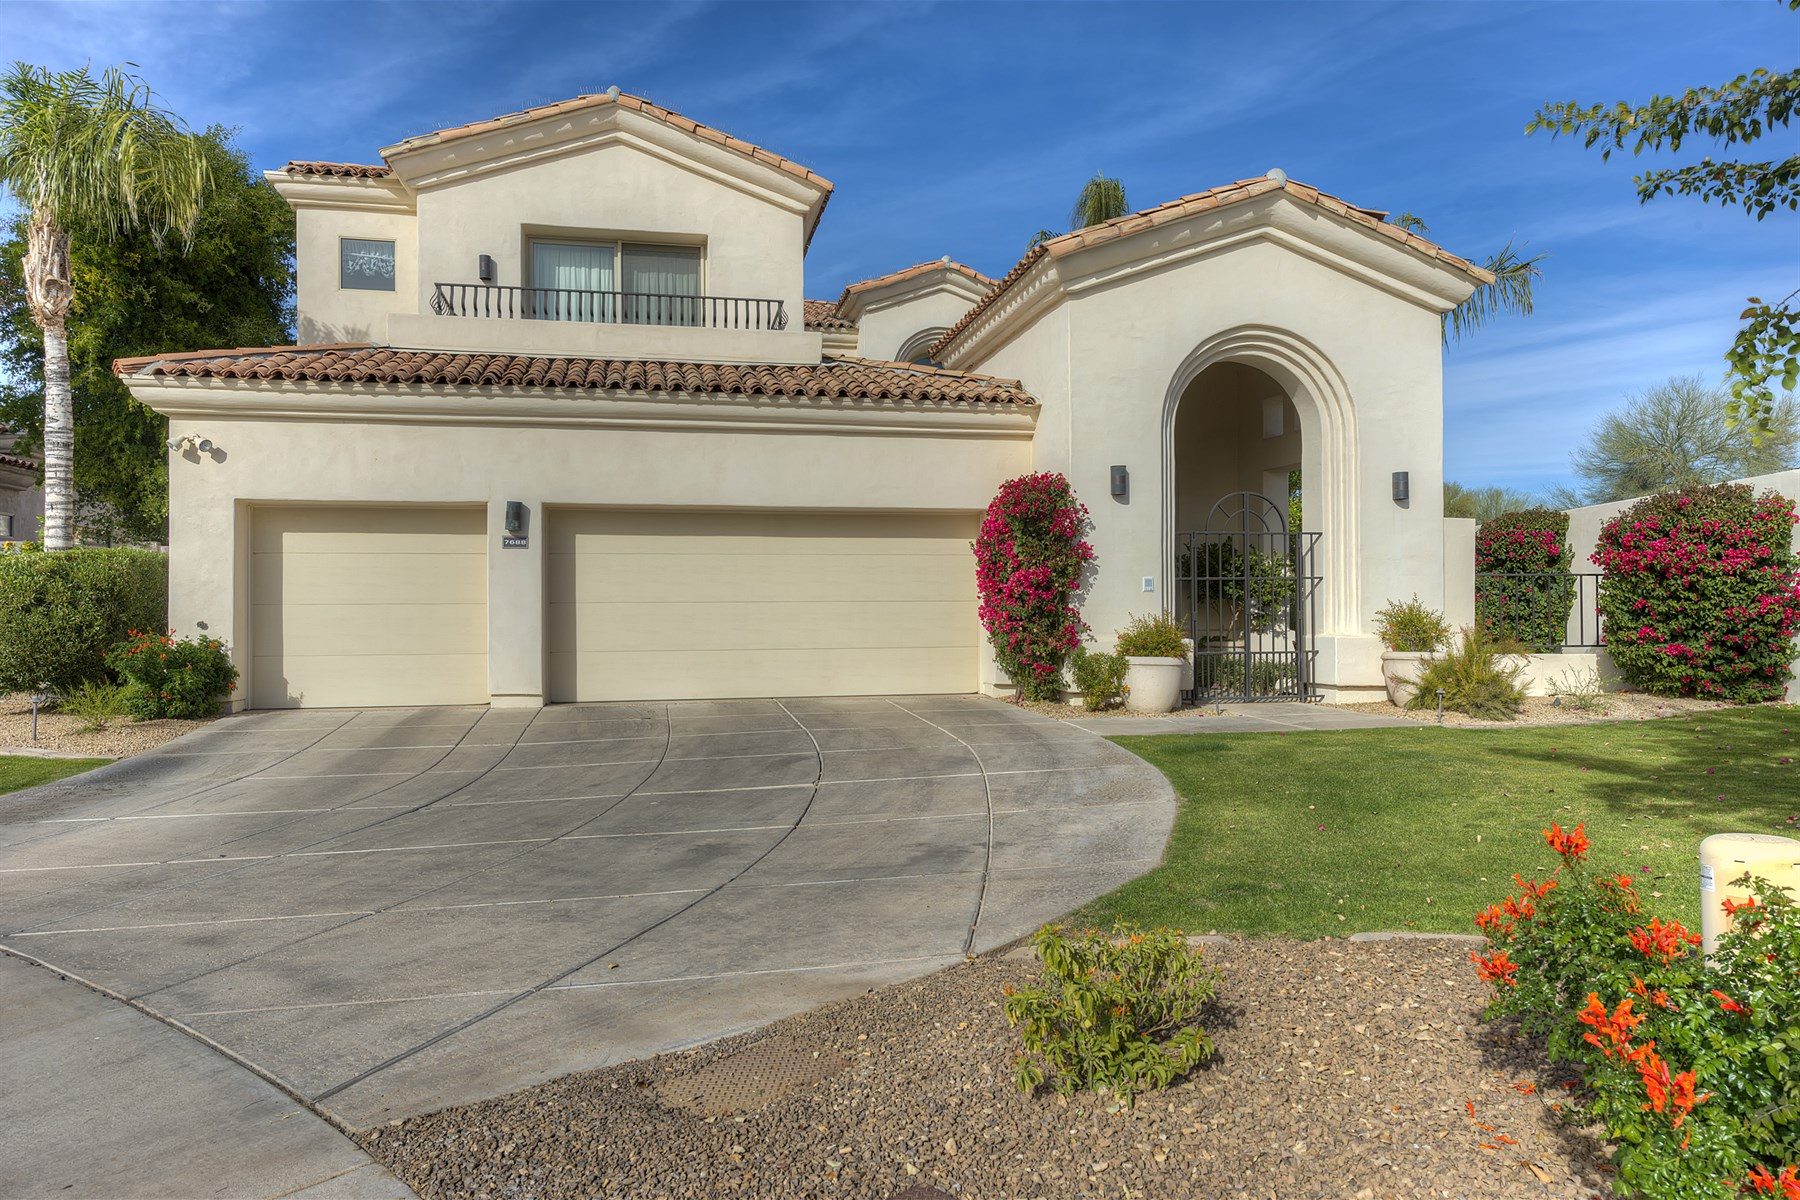 Single Family Home for Sale at Elegant Home in Guard-Gated Scottsdale Community 7688 E Sierra Vista Drive Scottsdale, Arizona 85250 United States